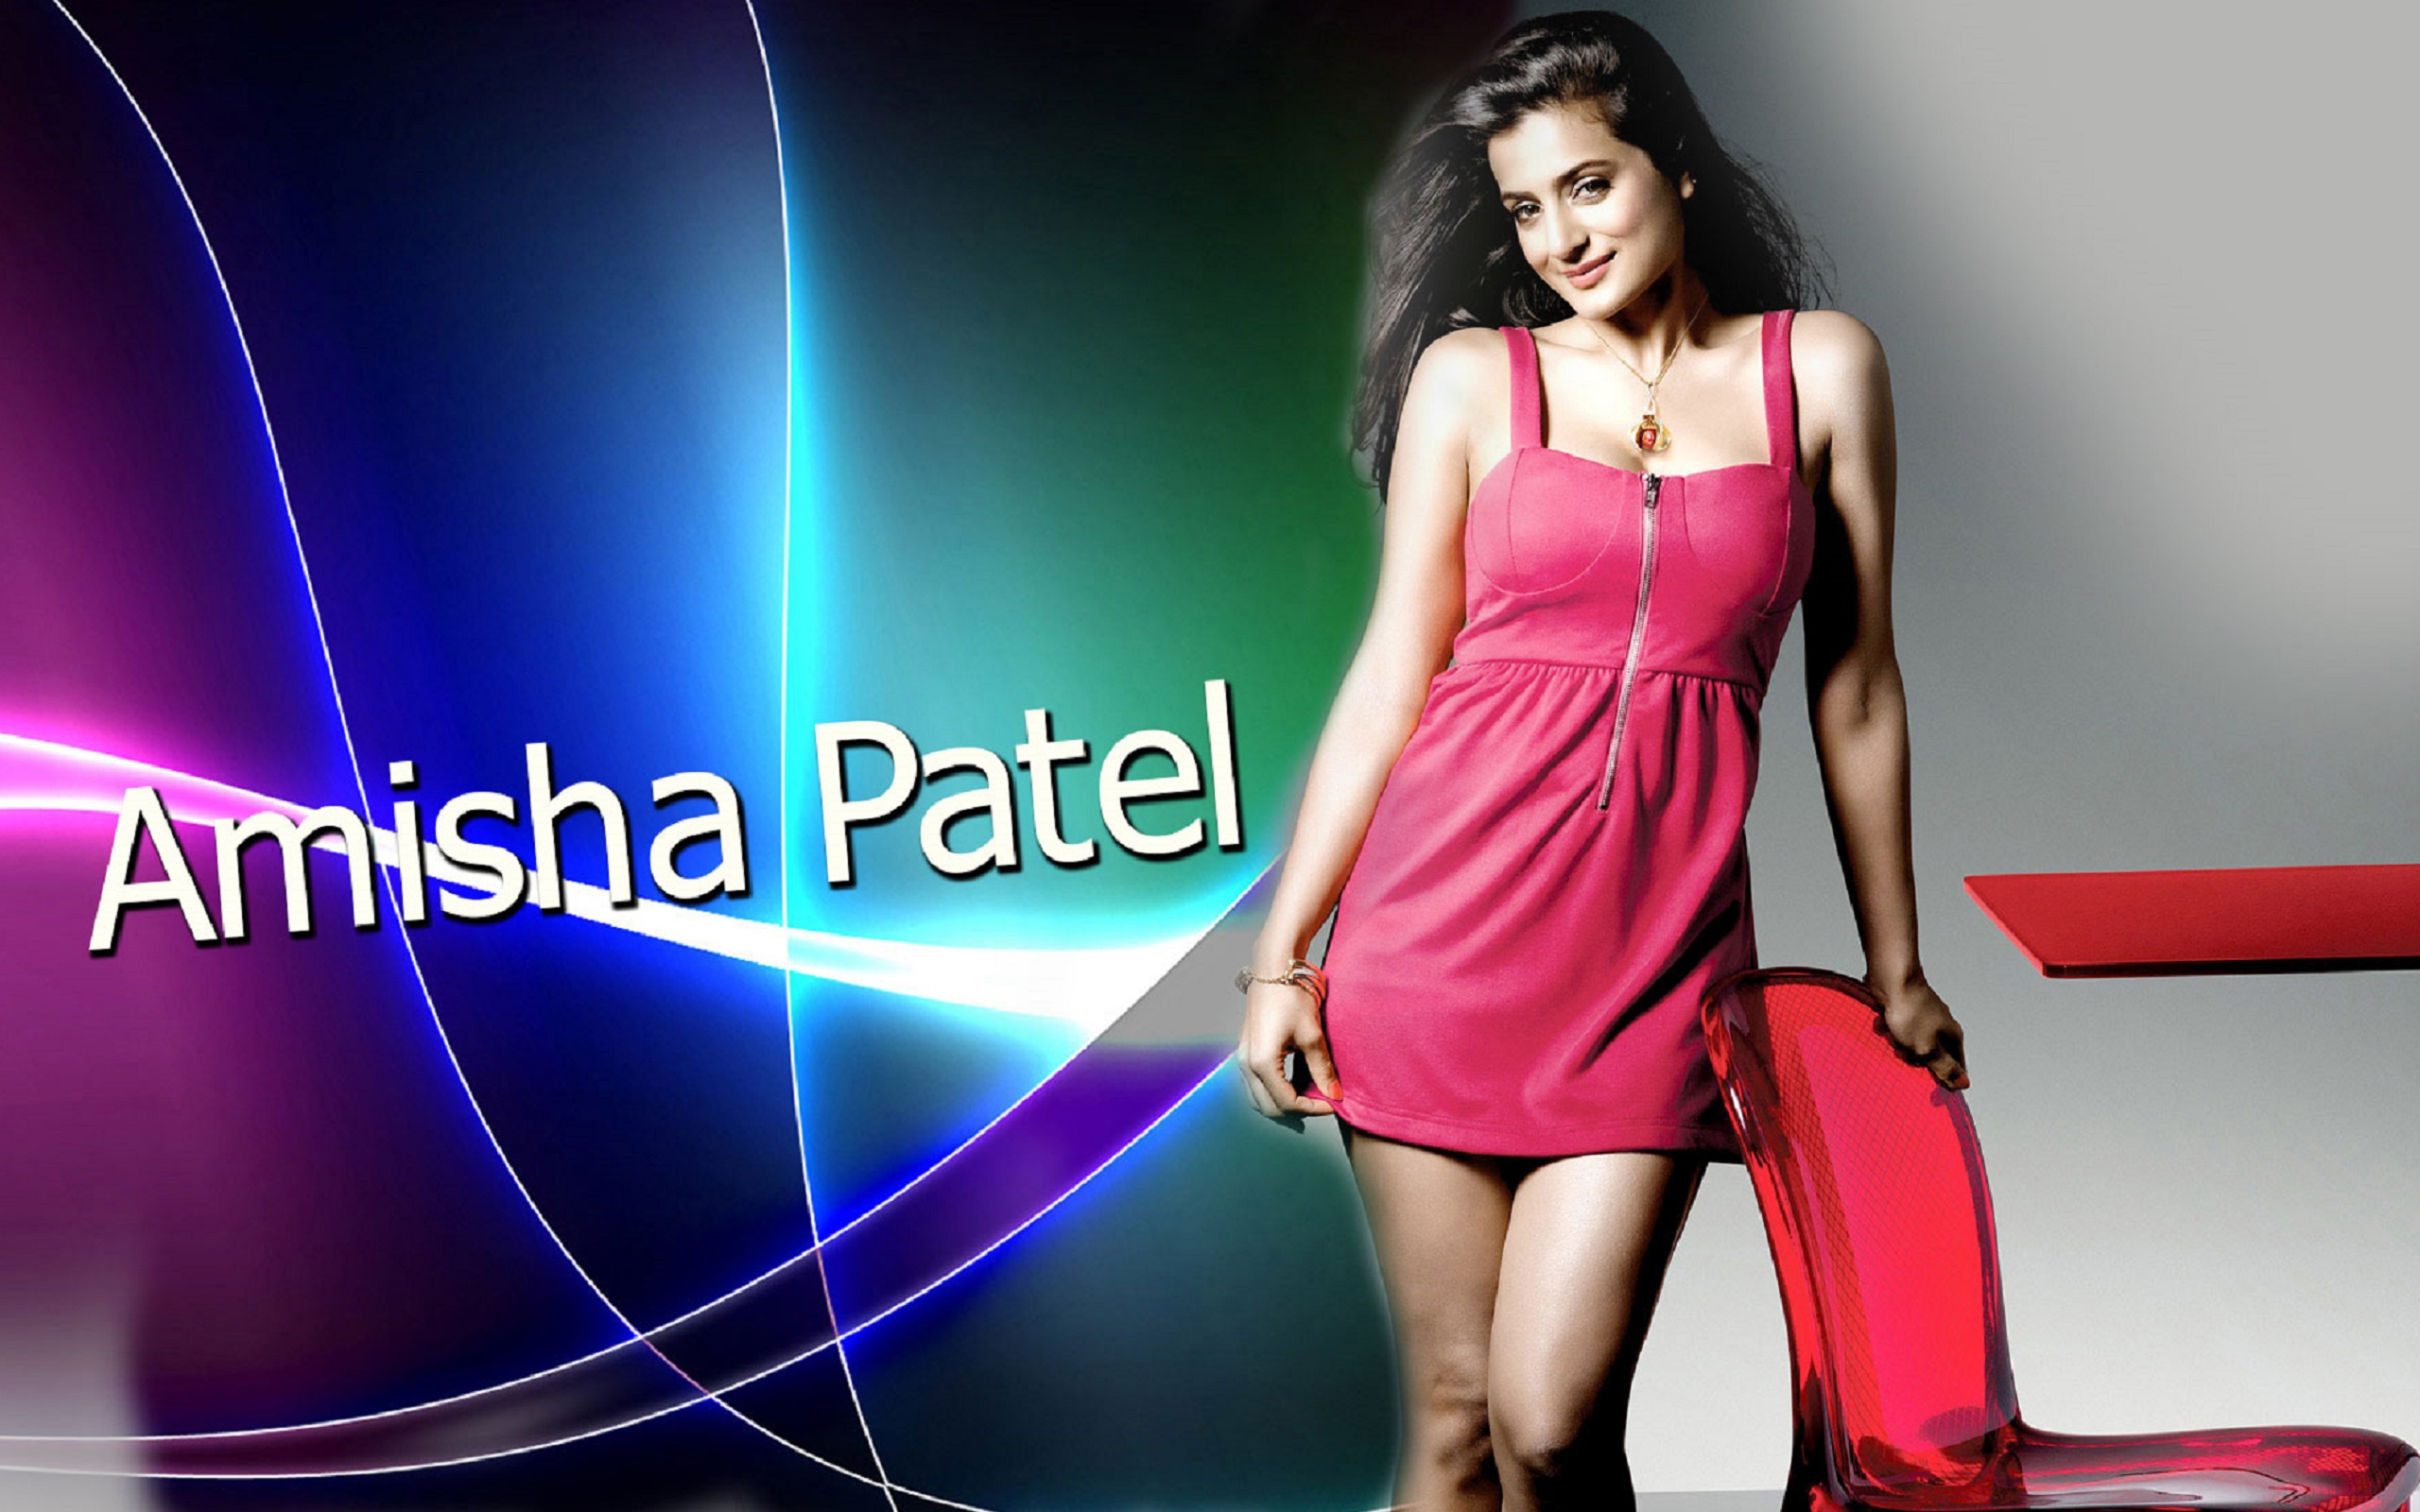 Amisha-Patel-HD-Wallpaper